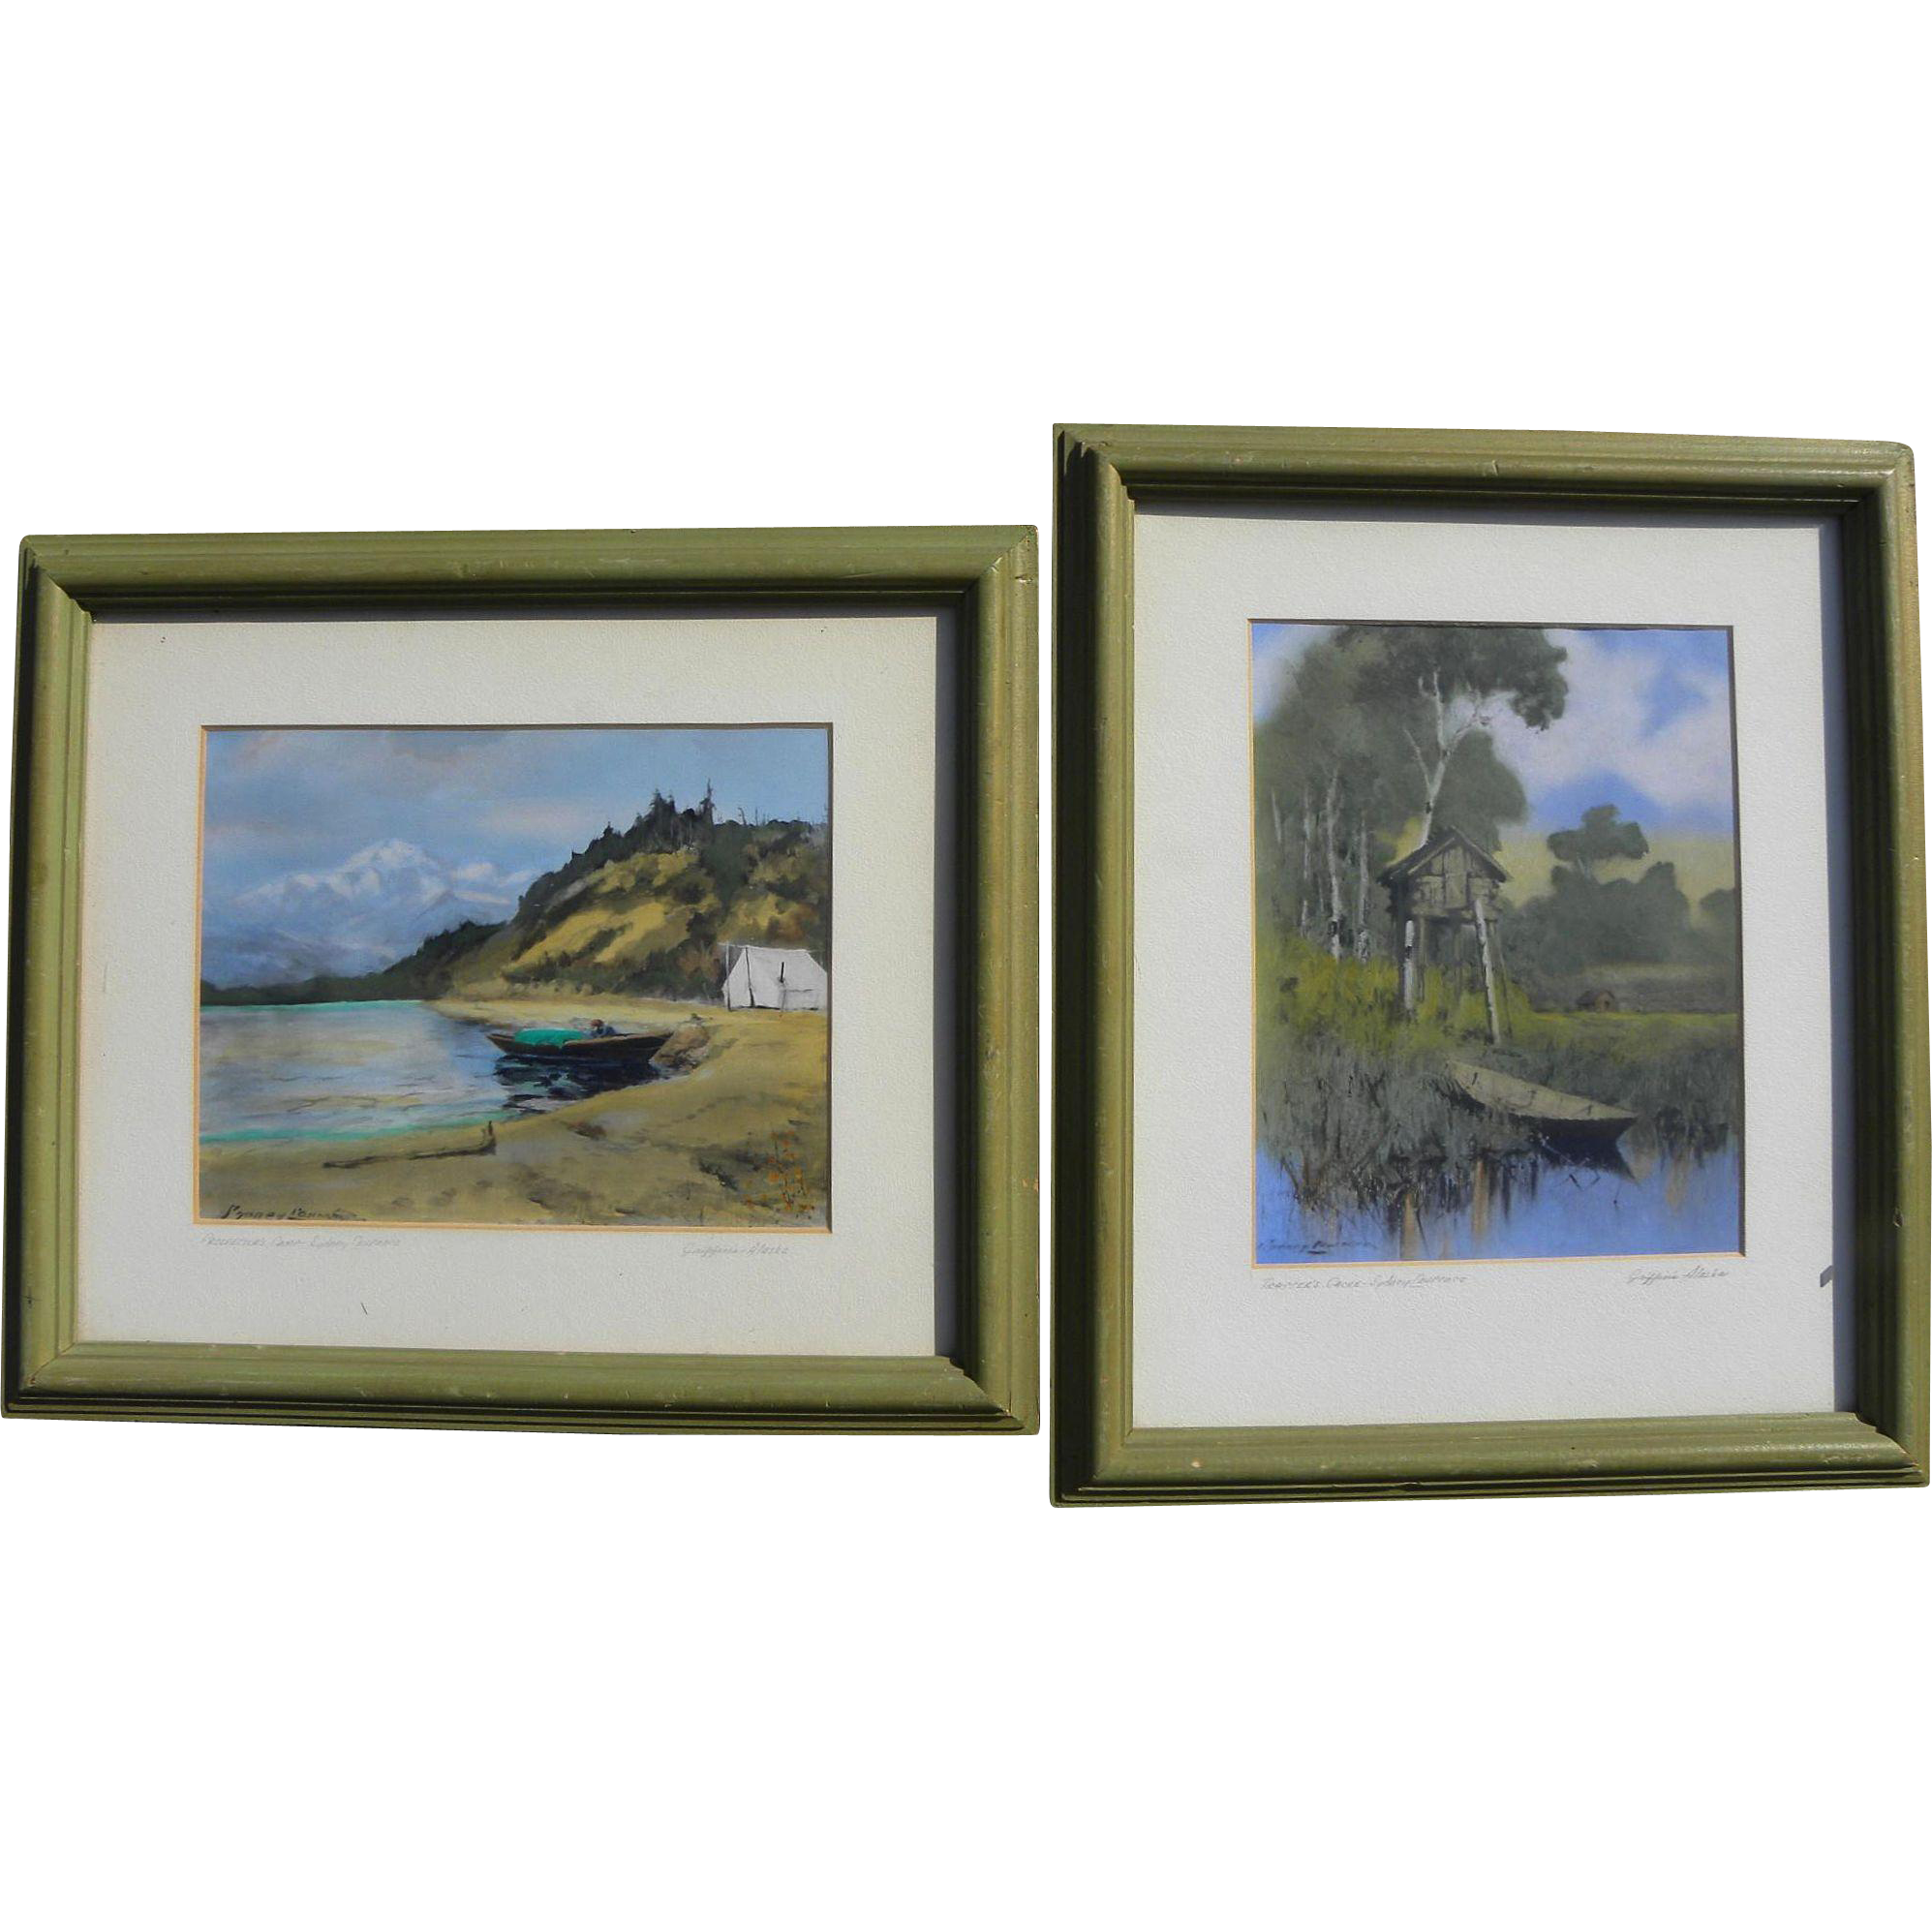 Alaskana two Sydney Laurence (1865-1940) signed colored Alaska scene prints by Griffin's